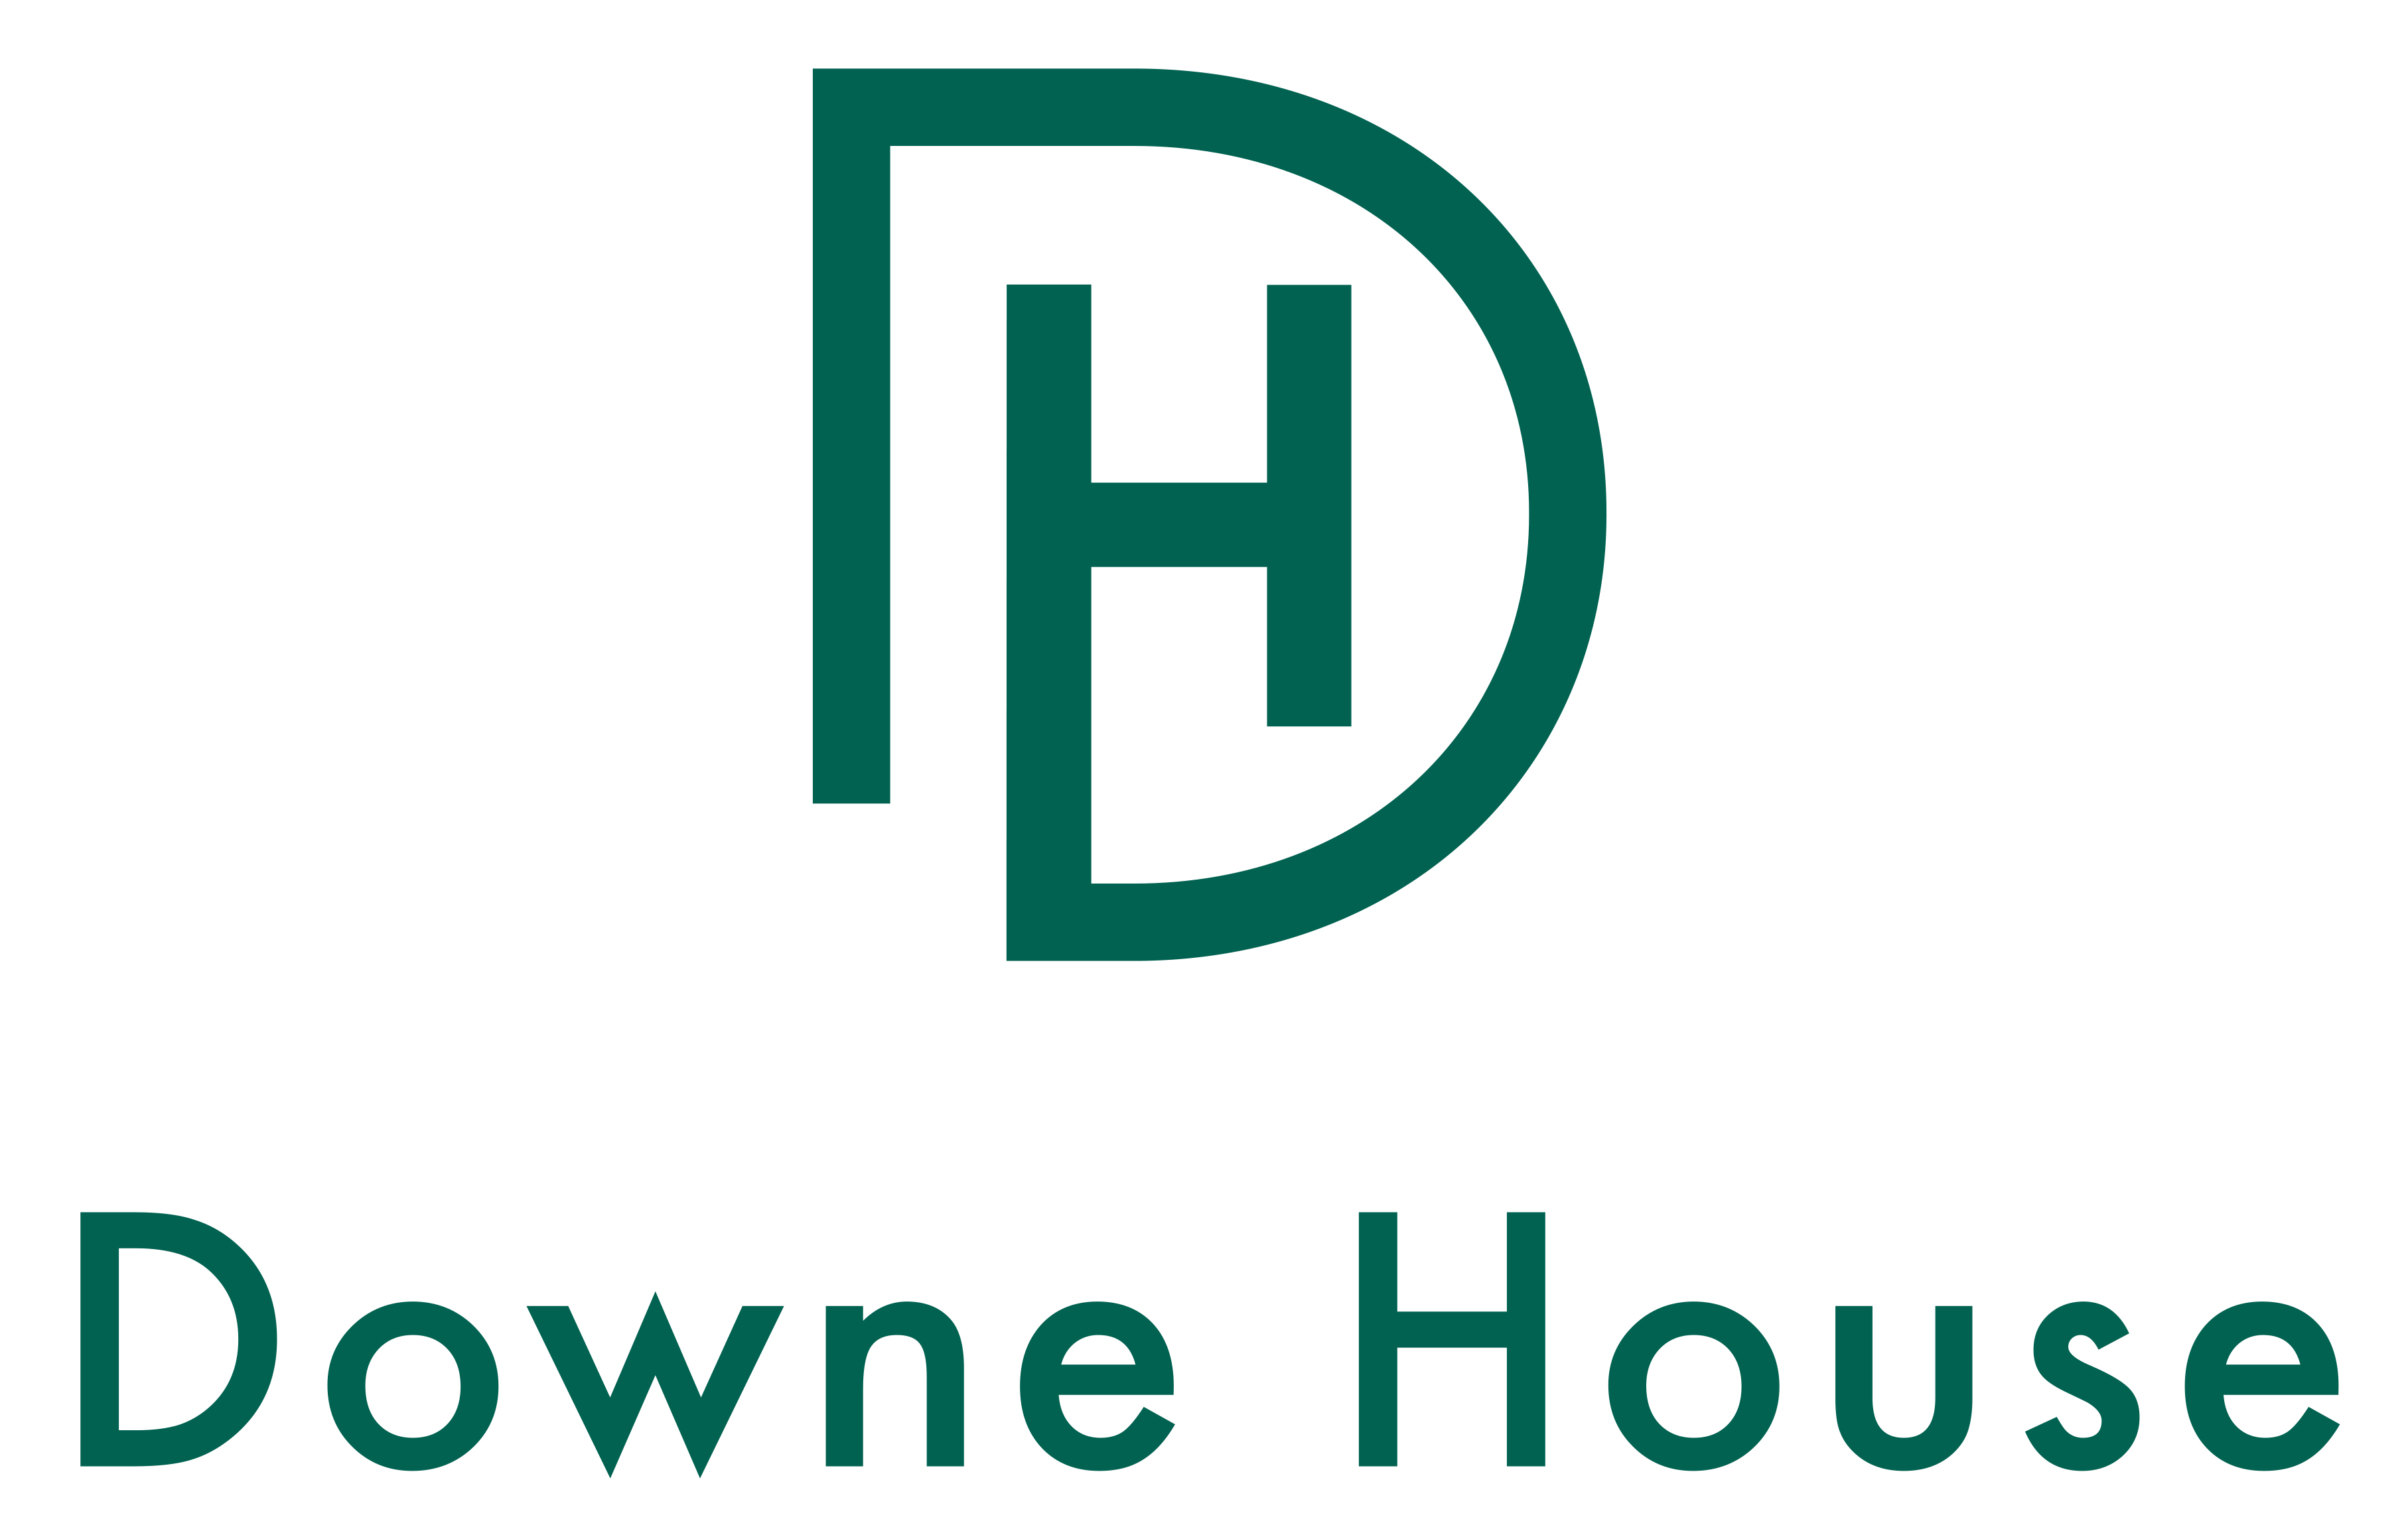 Downe House School